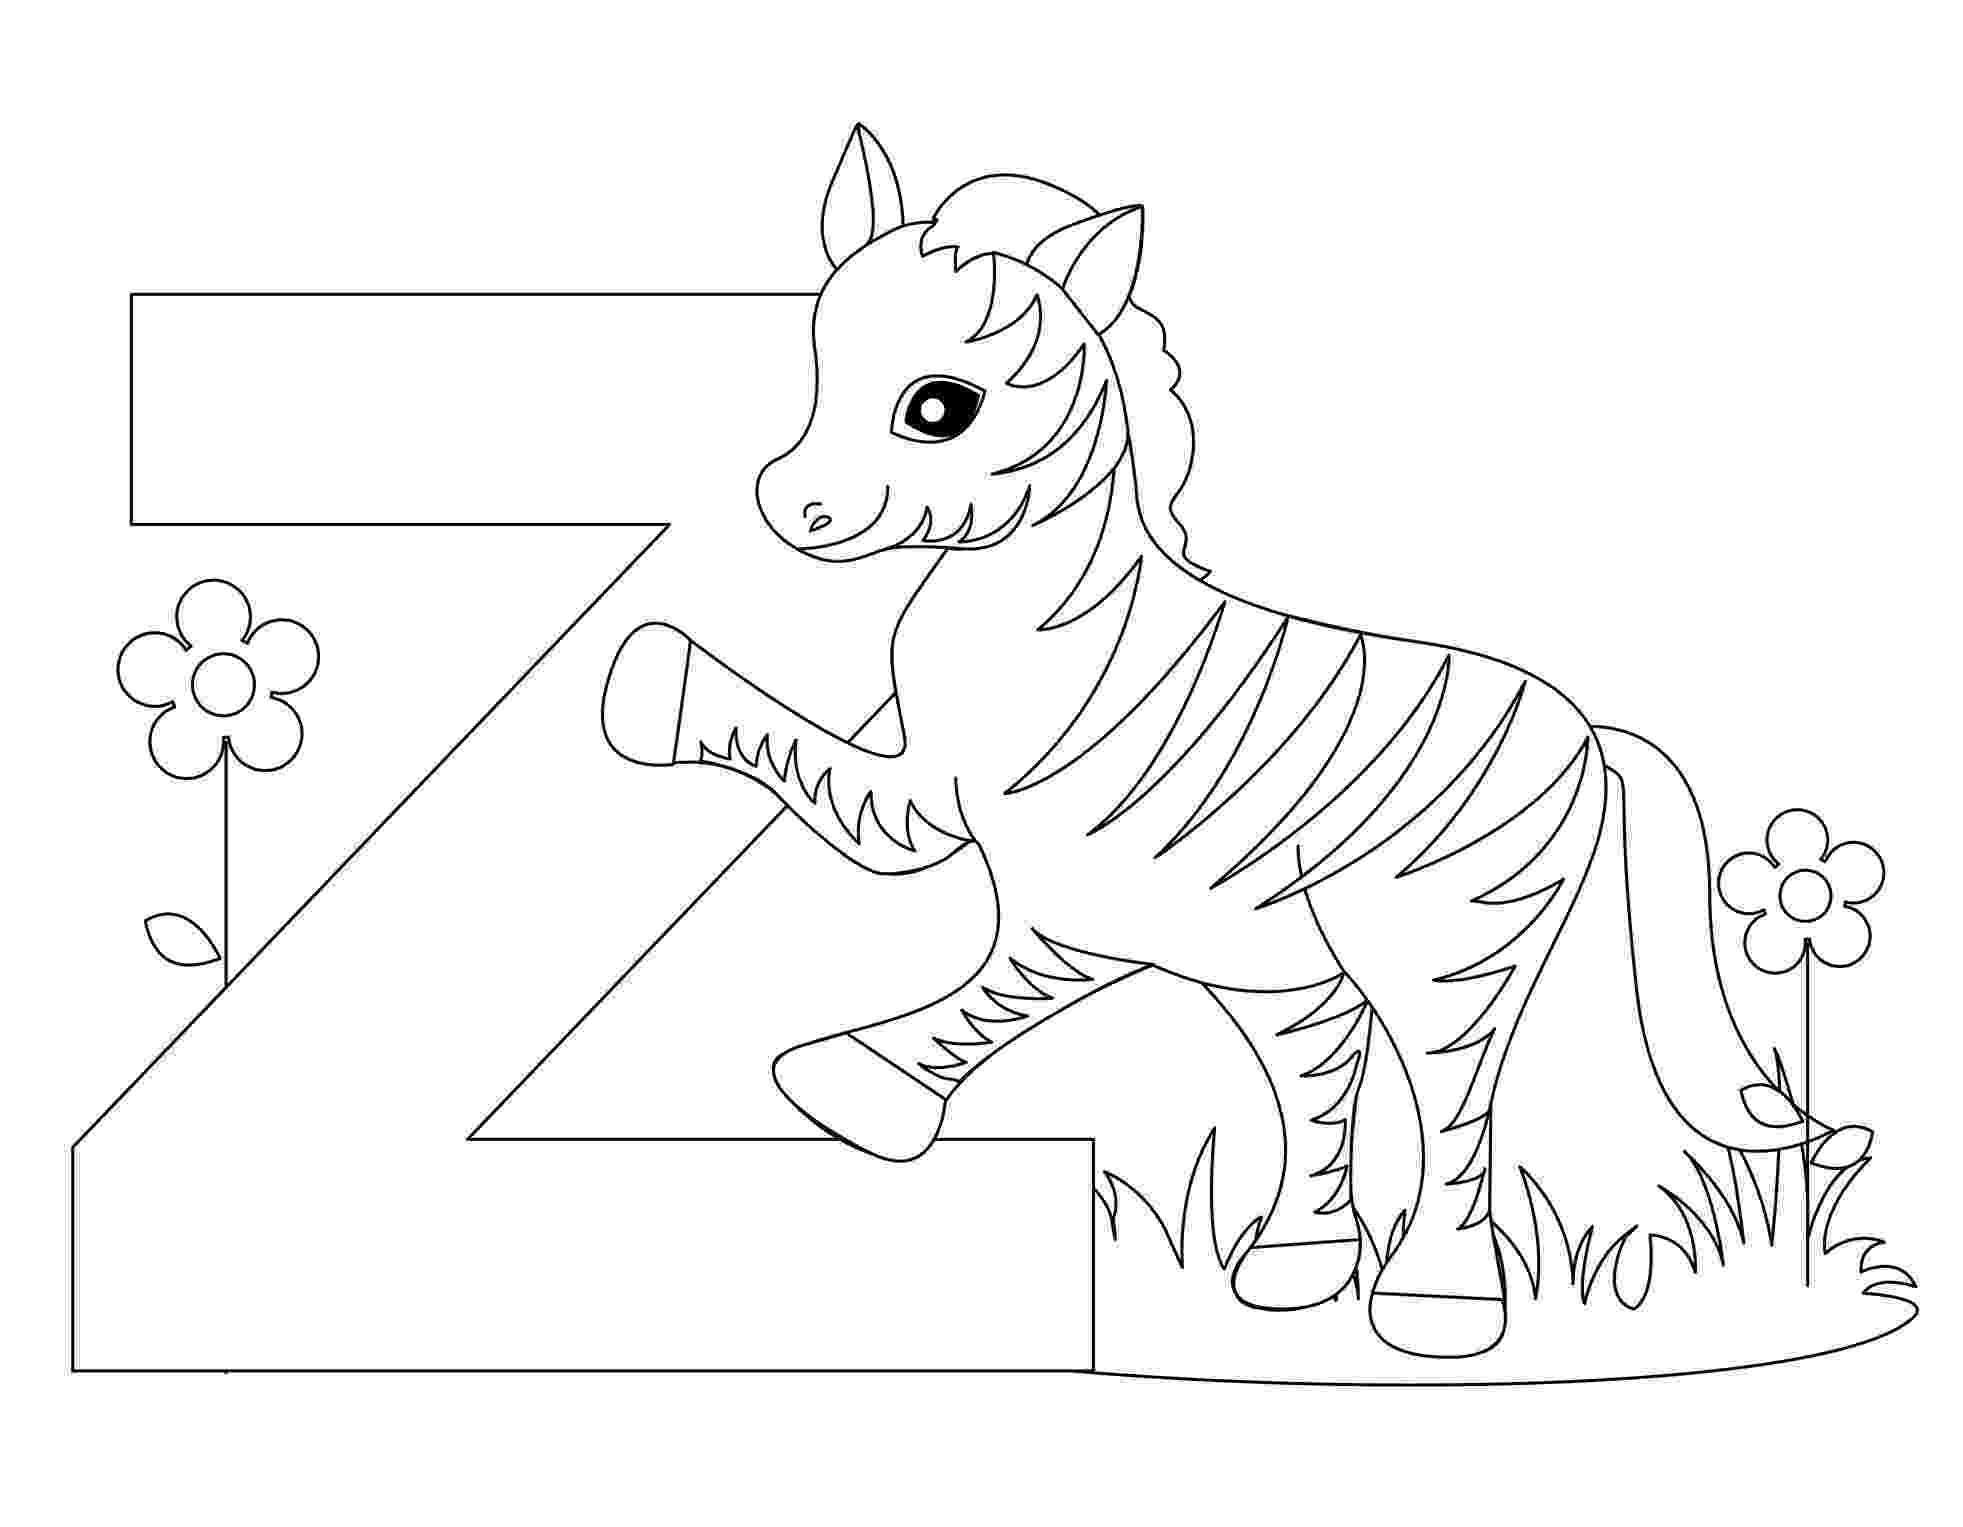 childrens colouring pages alphabet free printable alphabet coloring pages for kids best colouring pages childrens alphabet